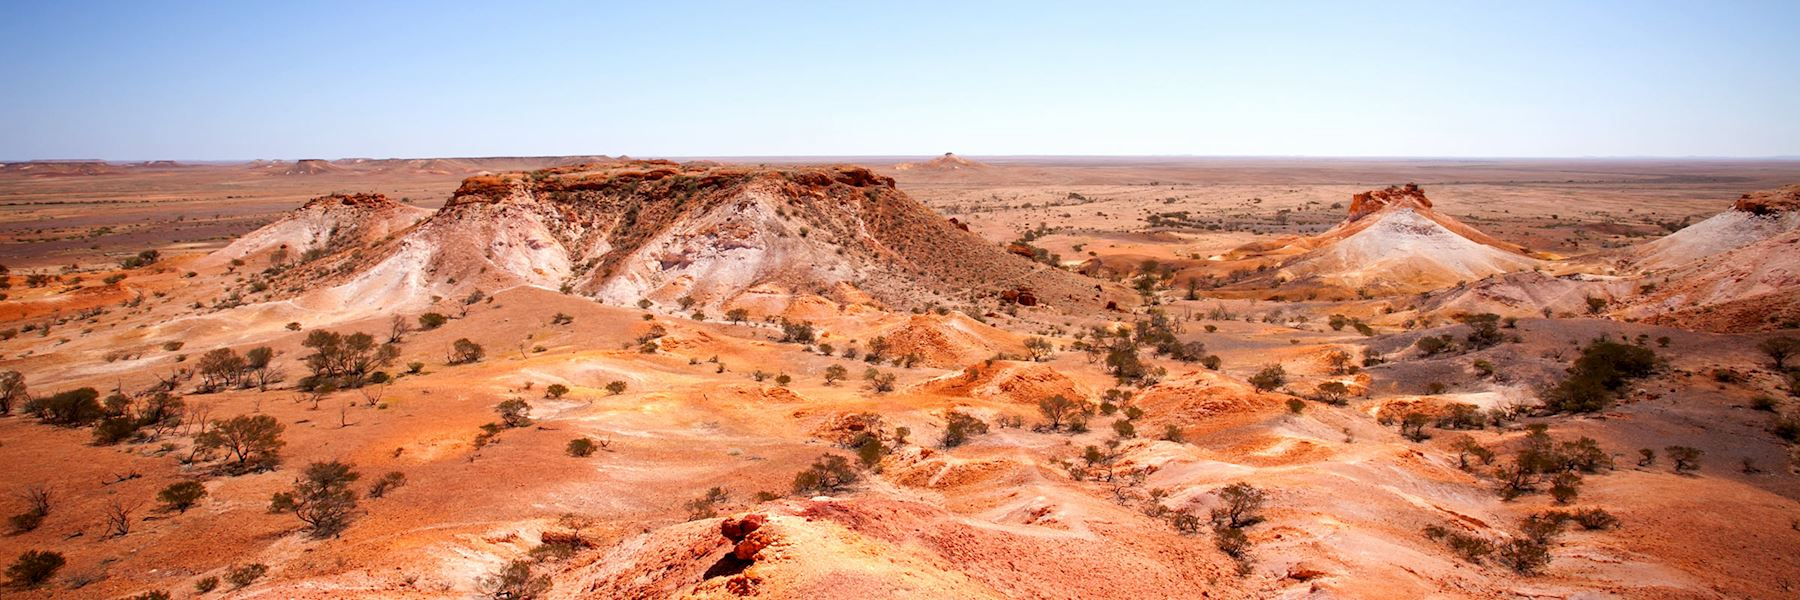 Visit Coober Pedy On A Trip To Australia Audley Travel